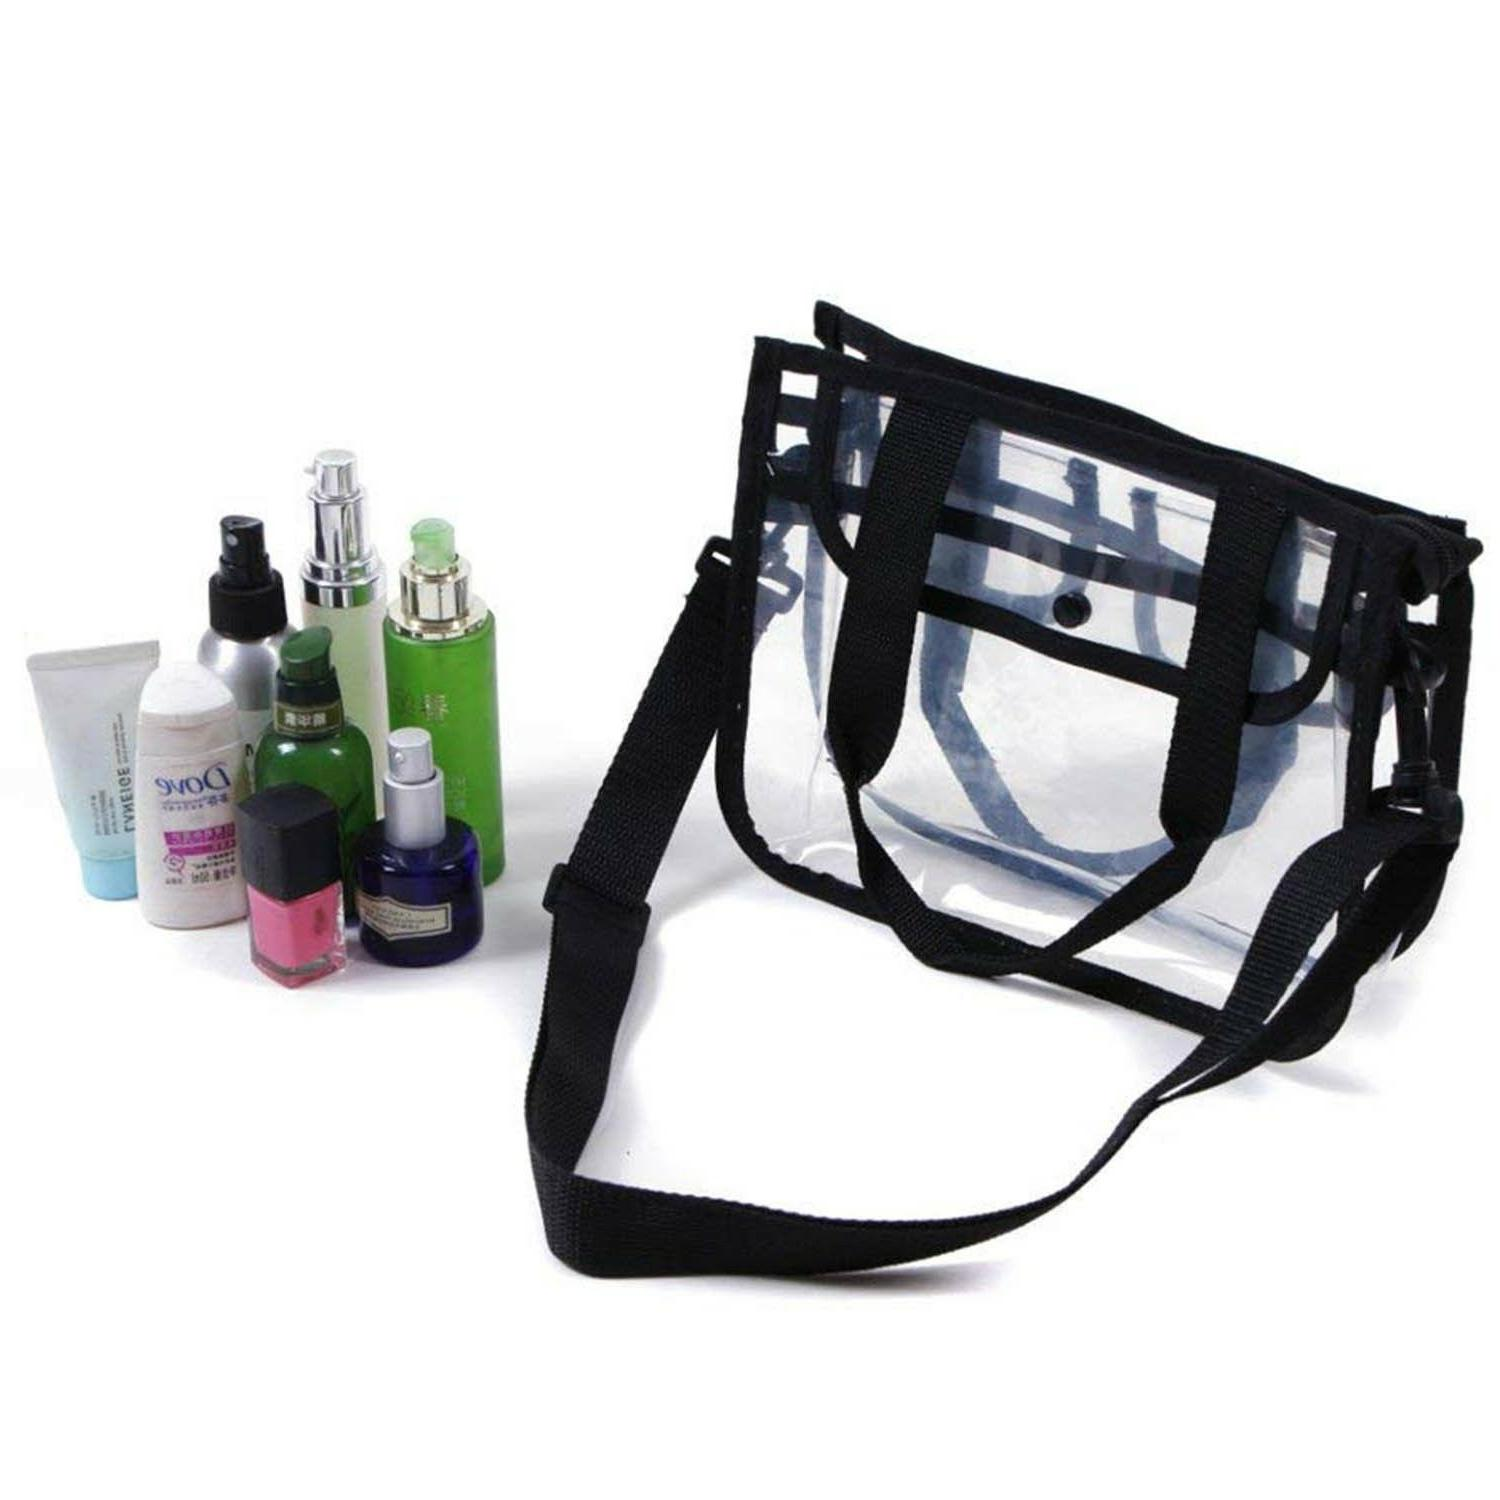 clear tote bag small shoulder carrying travel